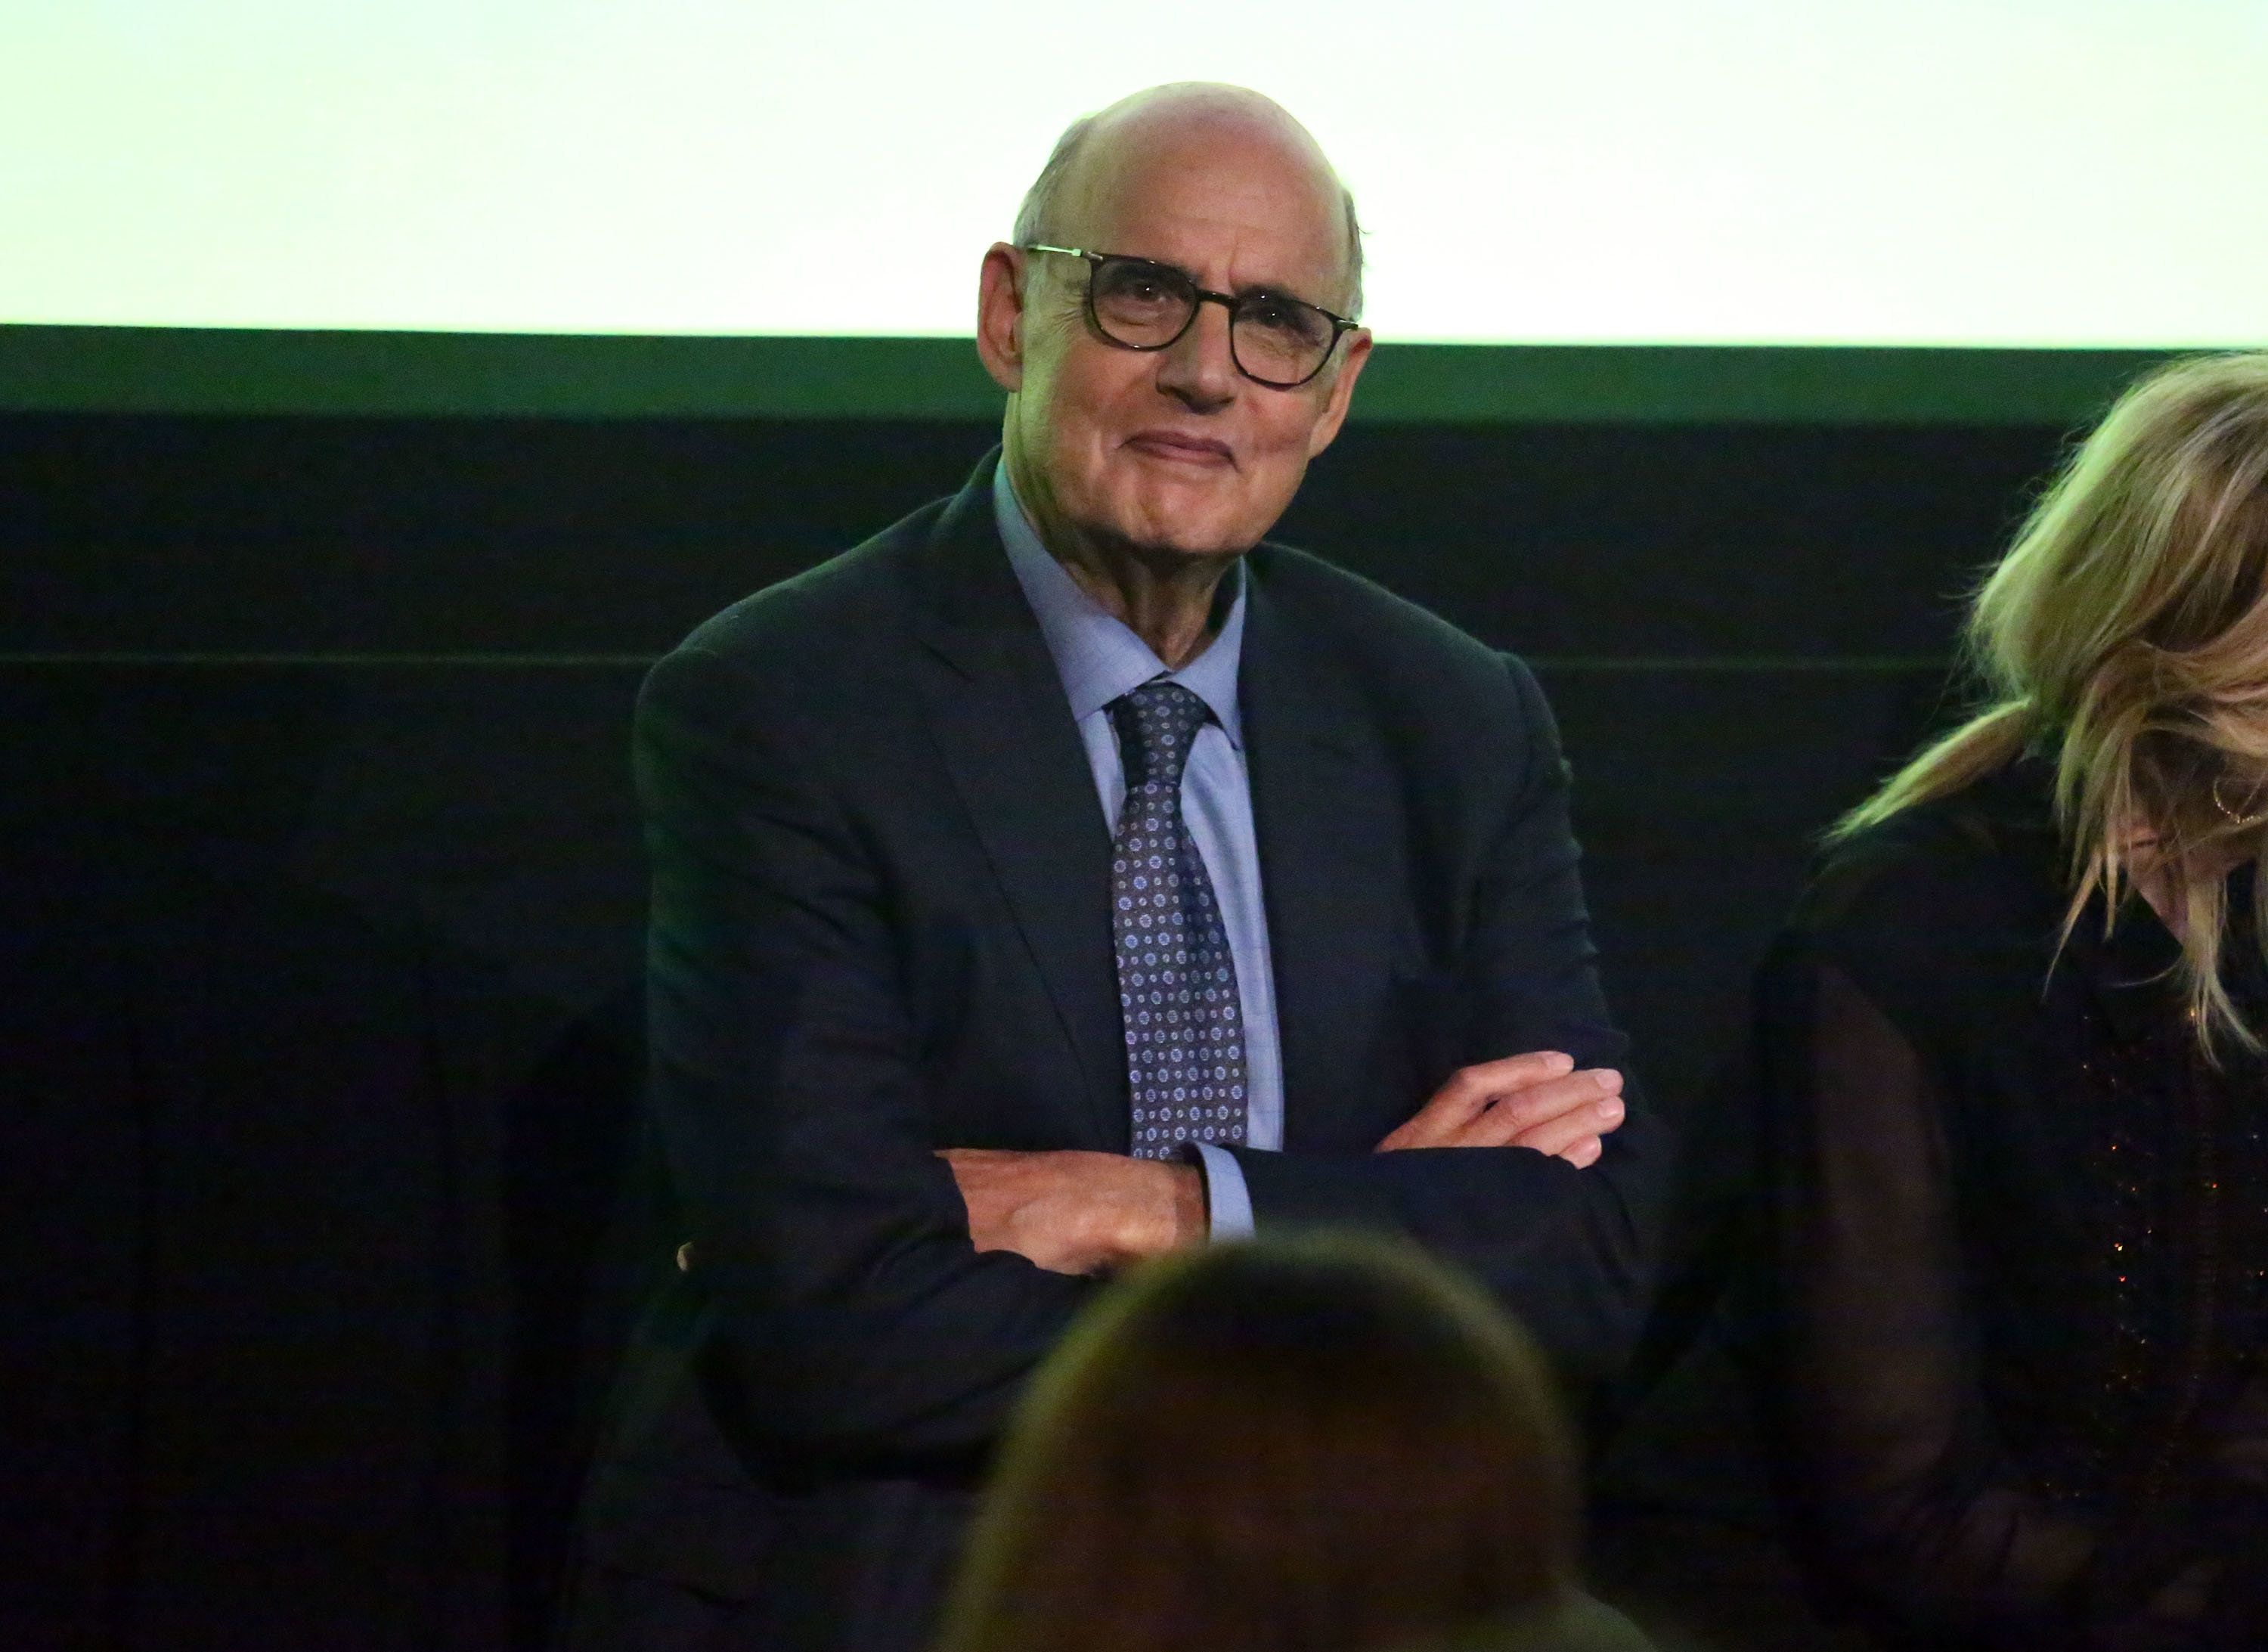 NEW YORK, NY - SEPTEMBER 14: Actor Jeffrey Tambor attends a screening event for members of the Screen Actors Guild in New York for the Amazon Prime series 'Transparent' on September 14, 2017 in New York City.  (Photo by Astrid Stawiarz/Getty Images for Amazon Studios)